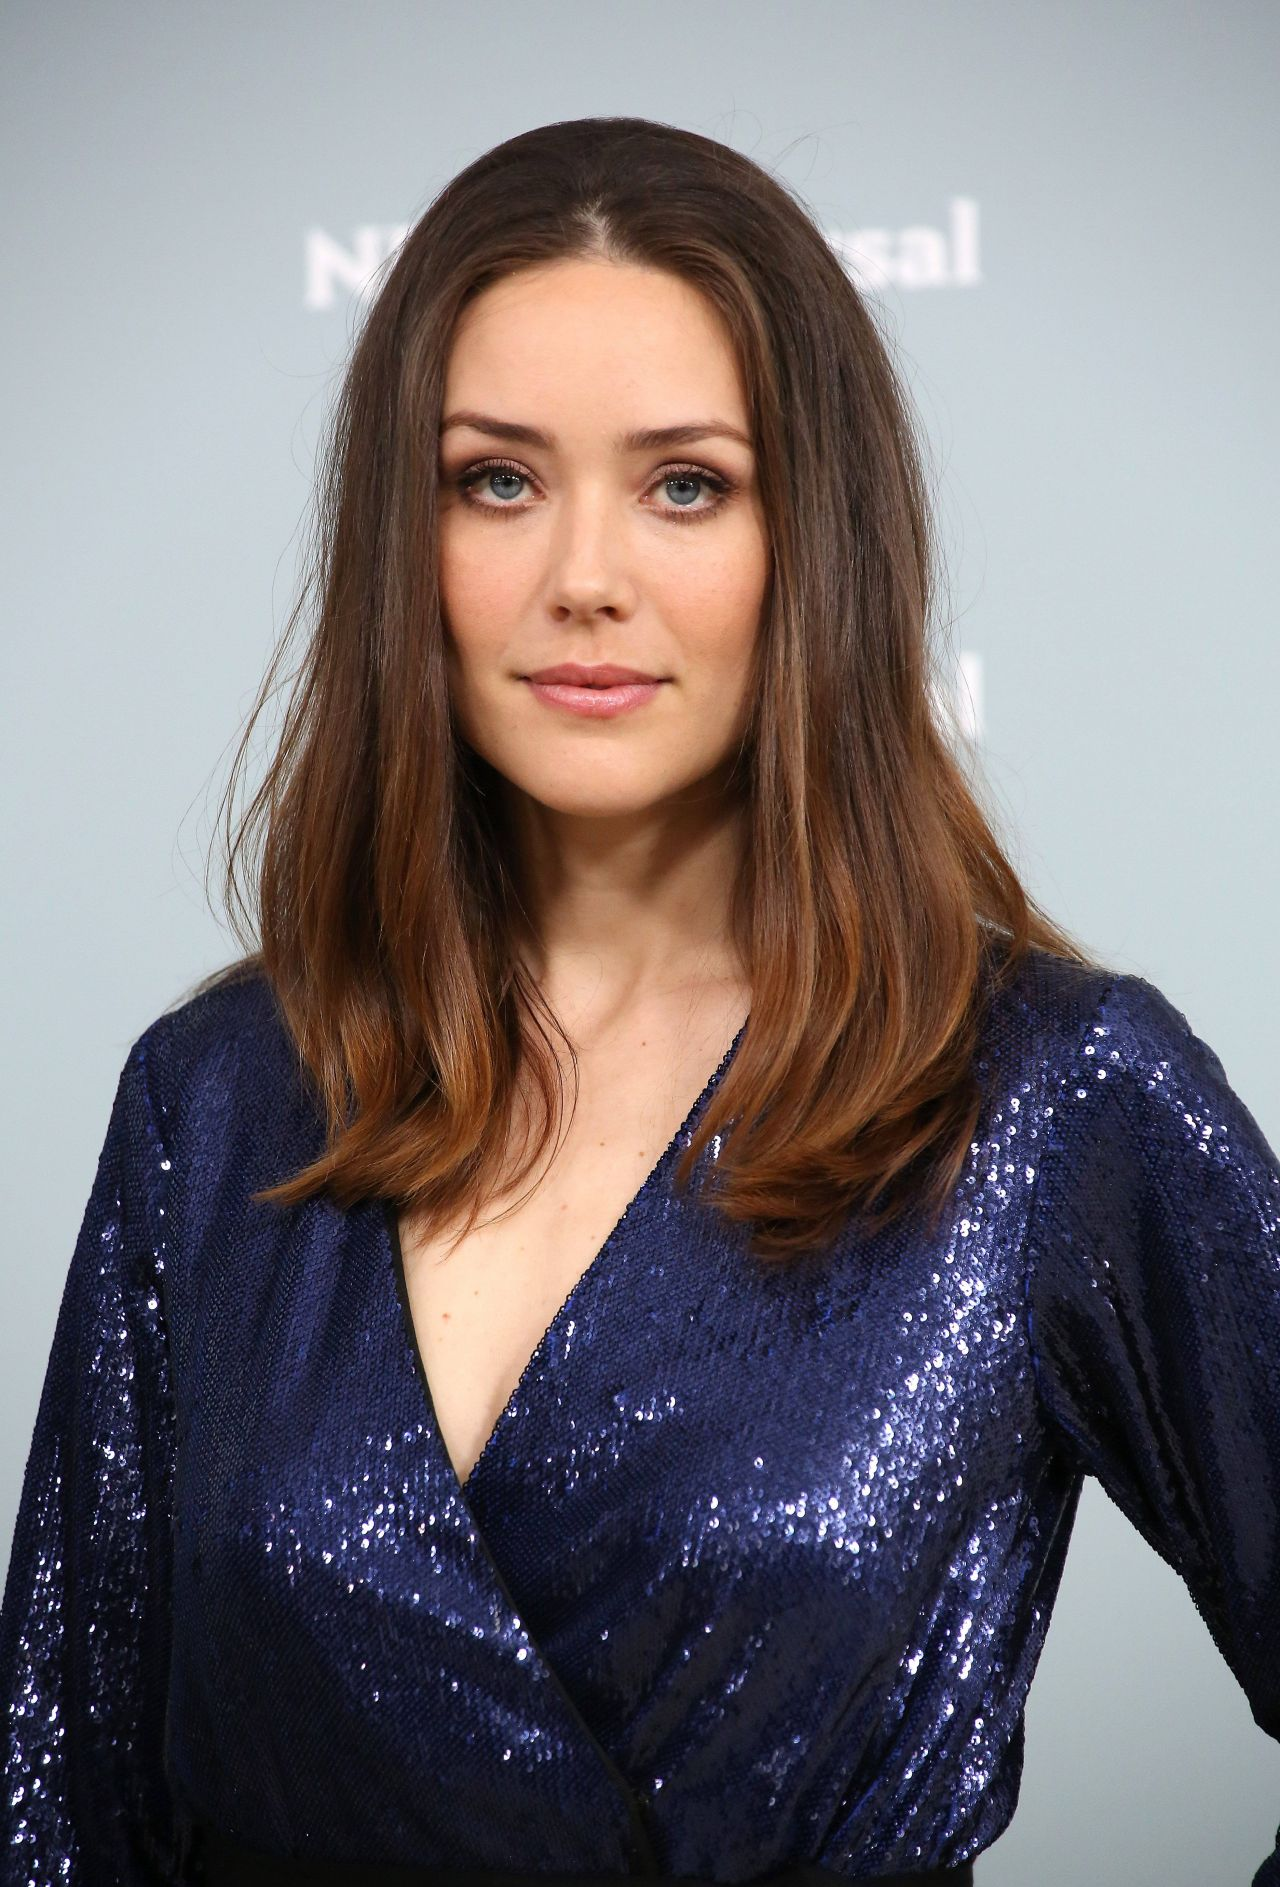 Megan Boone - 2018 NBCUniversal Upfront in NYC • CelebMafia